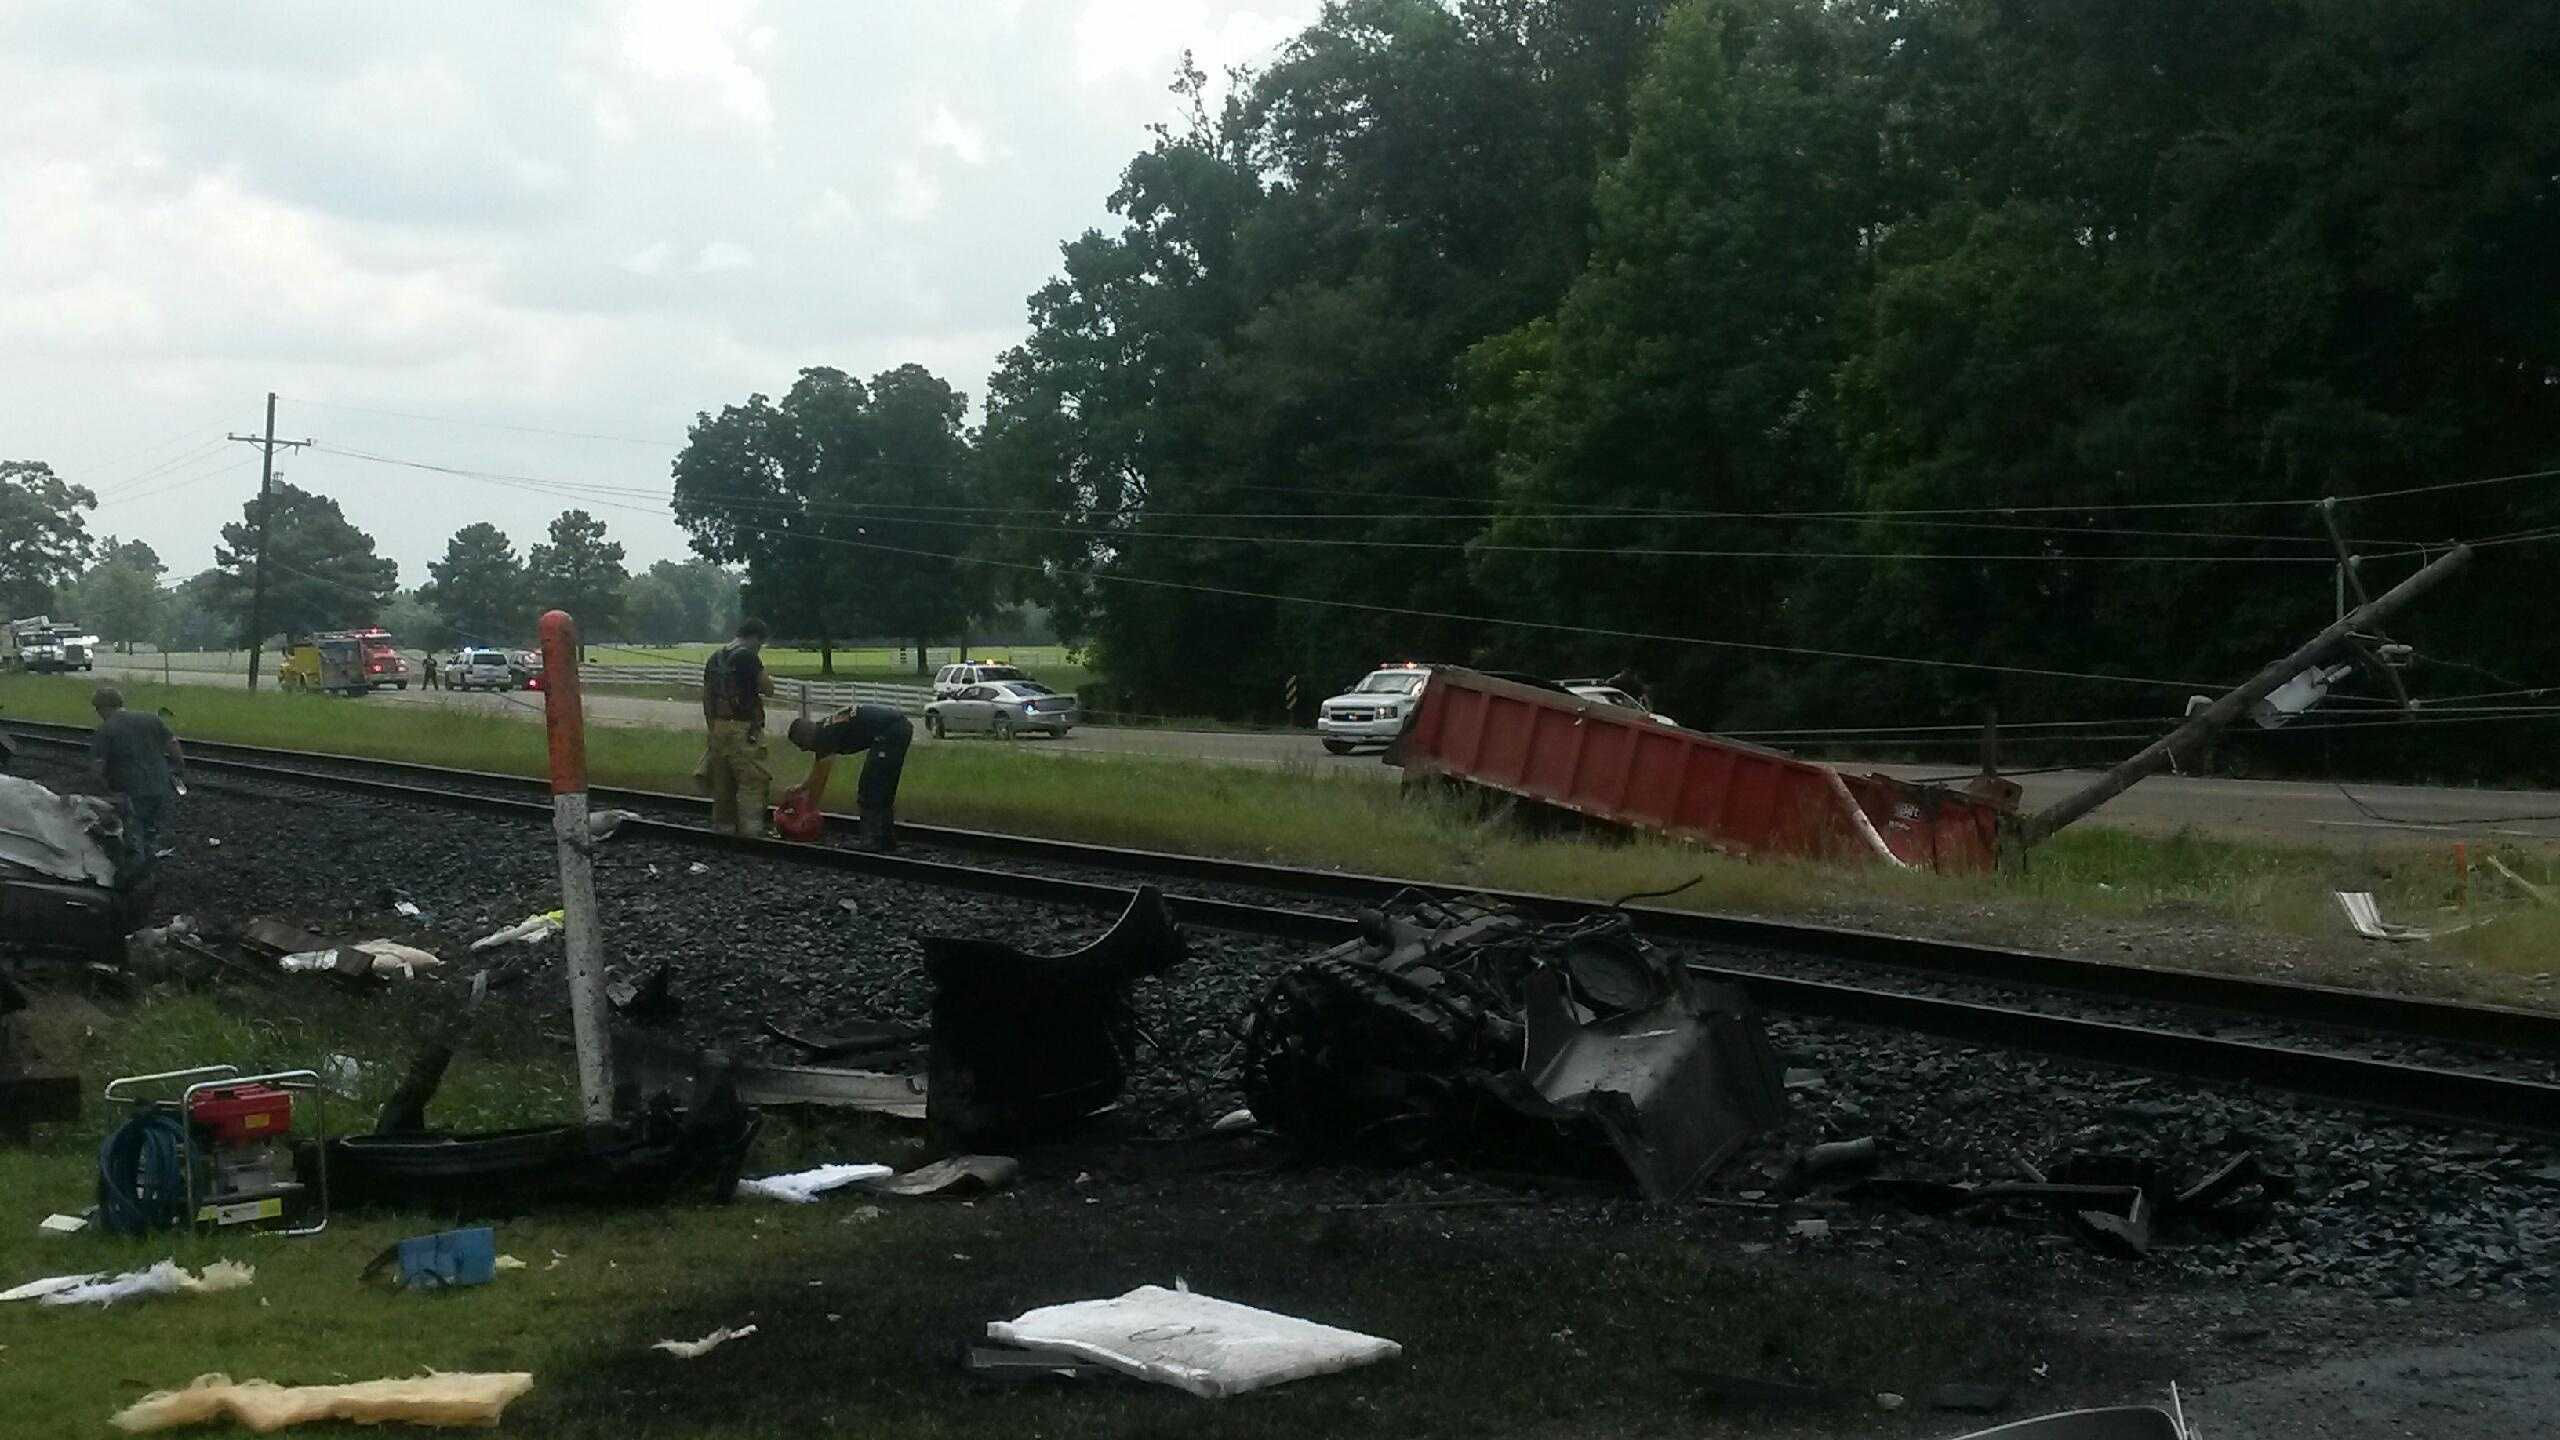 Amite train crash